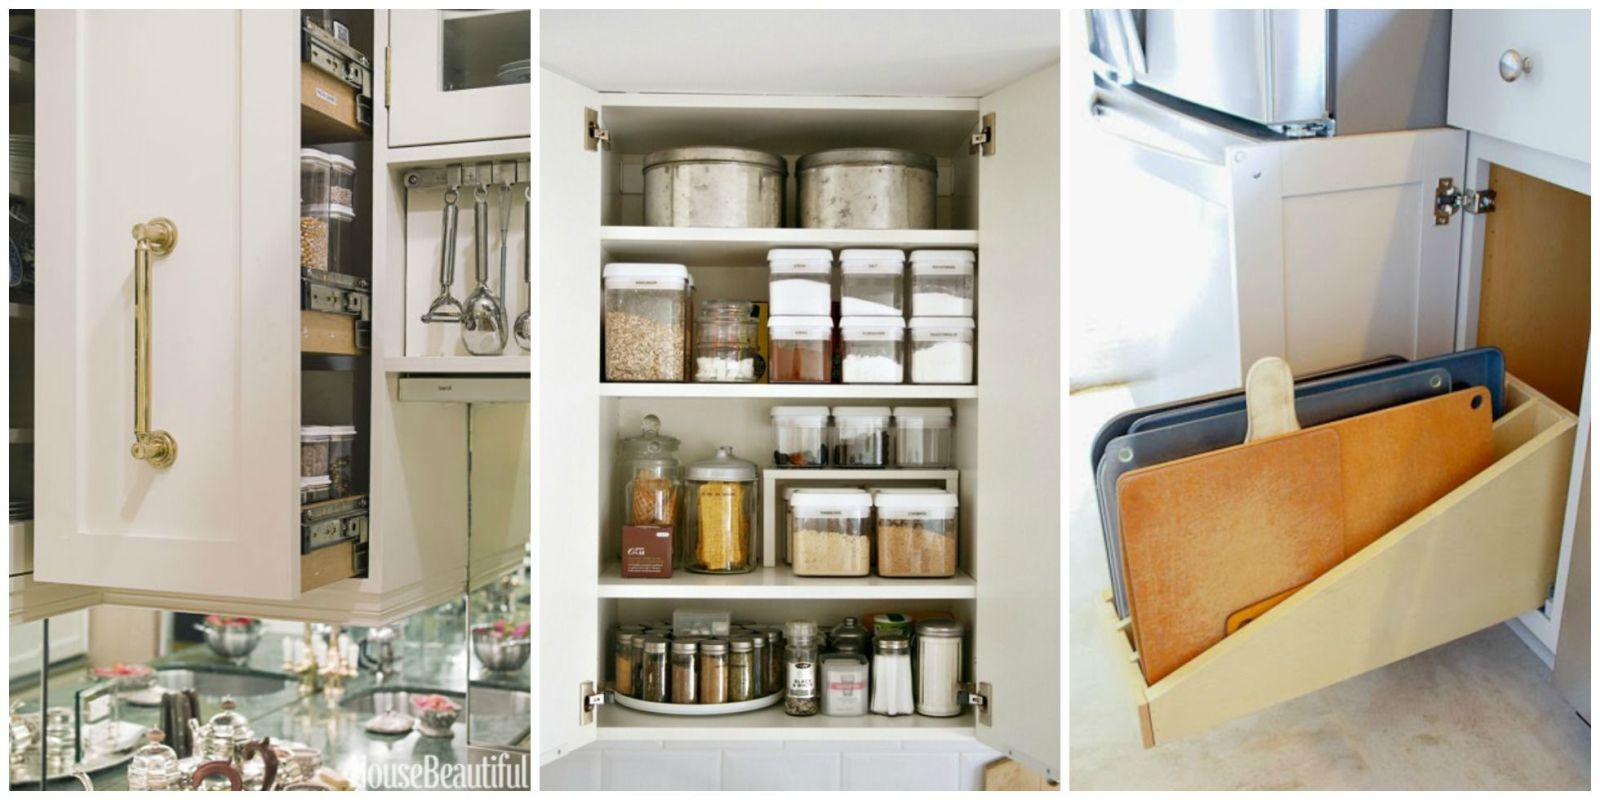 Kitchen Shelf Organization Organizing Kitchen Cabinets Storage Tips For Cabinets